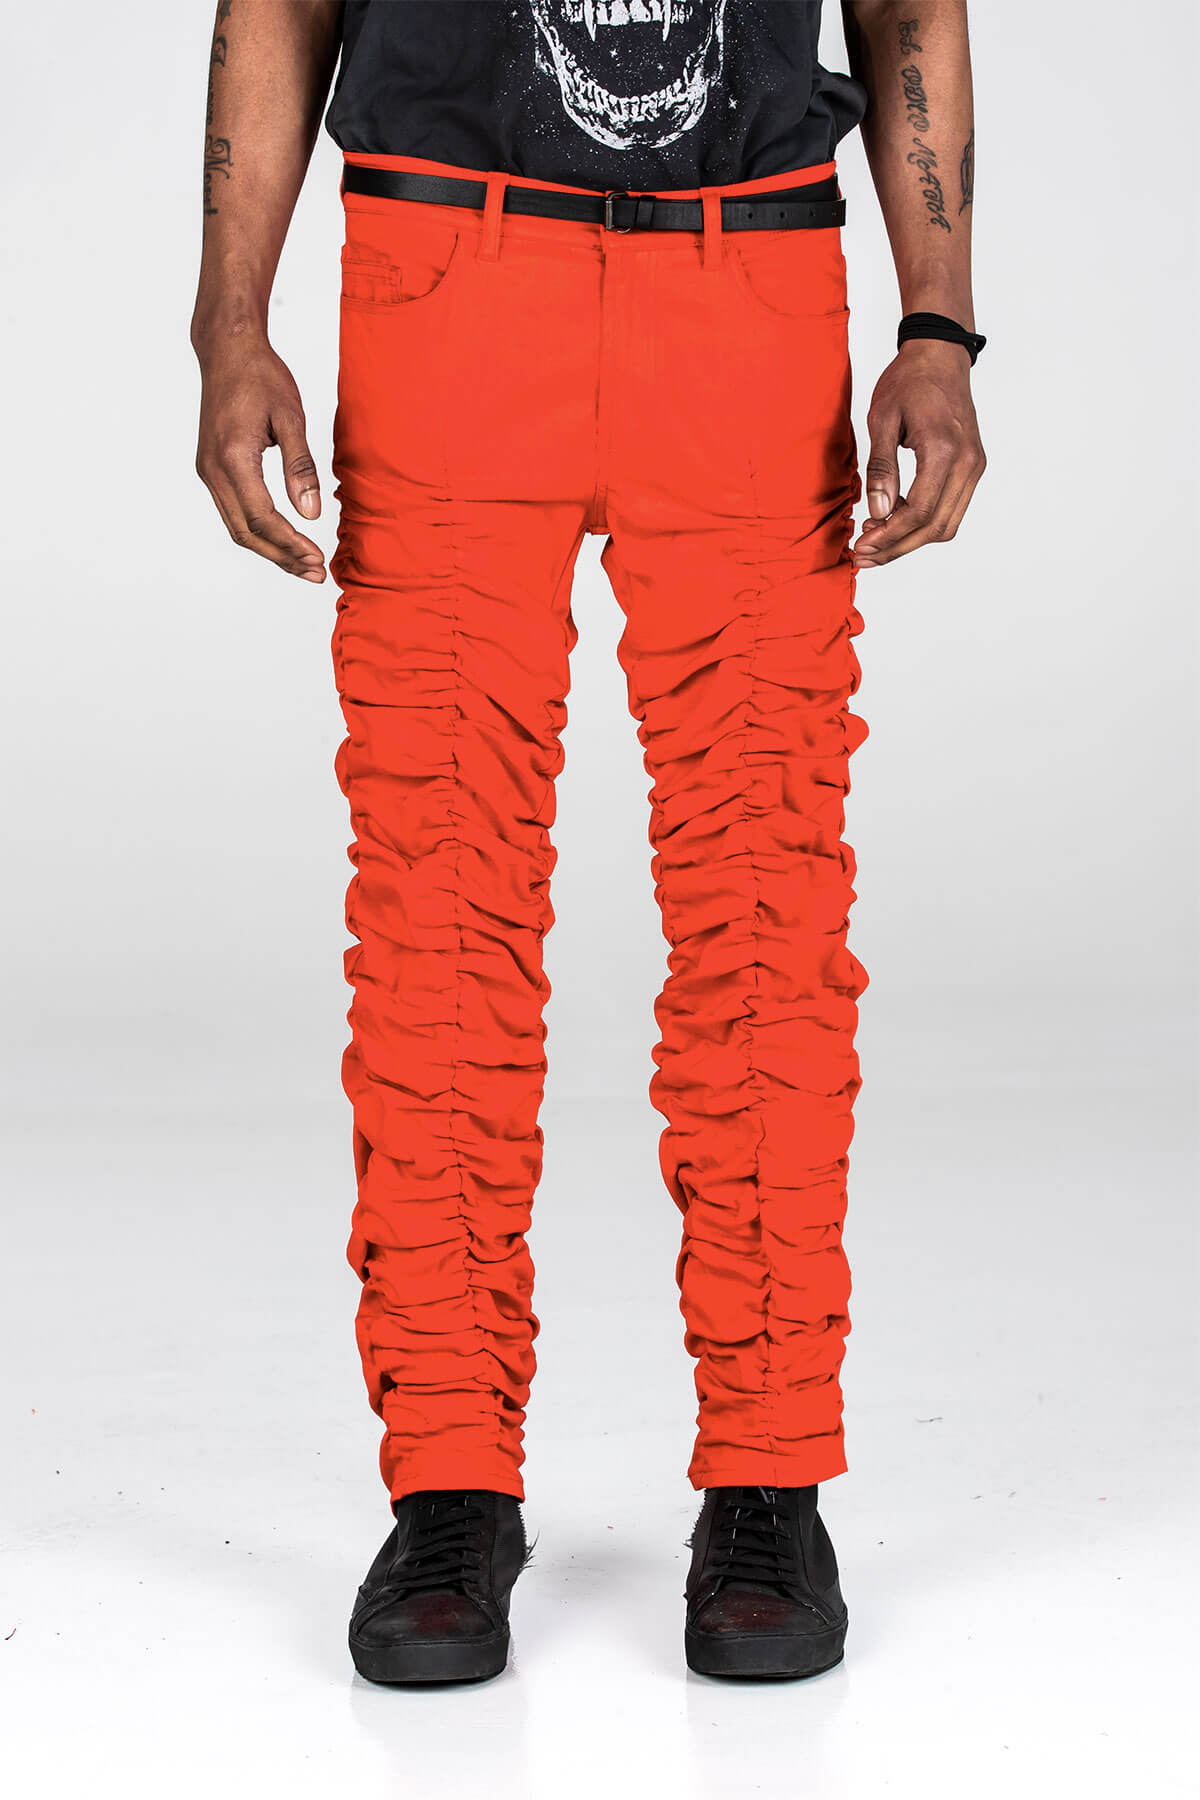 RED STACK PANTS - BOTTOM - A/W 2020 - MJB